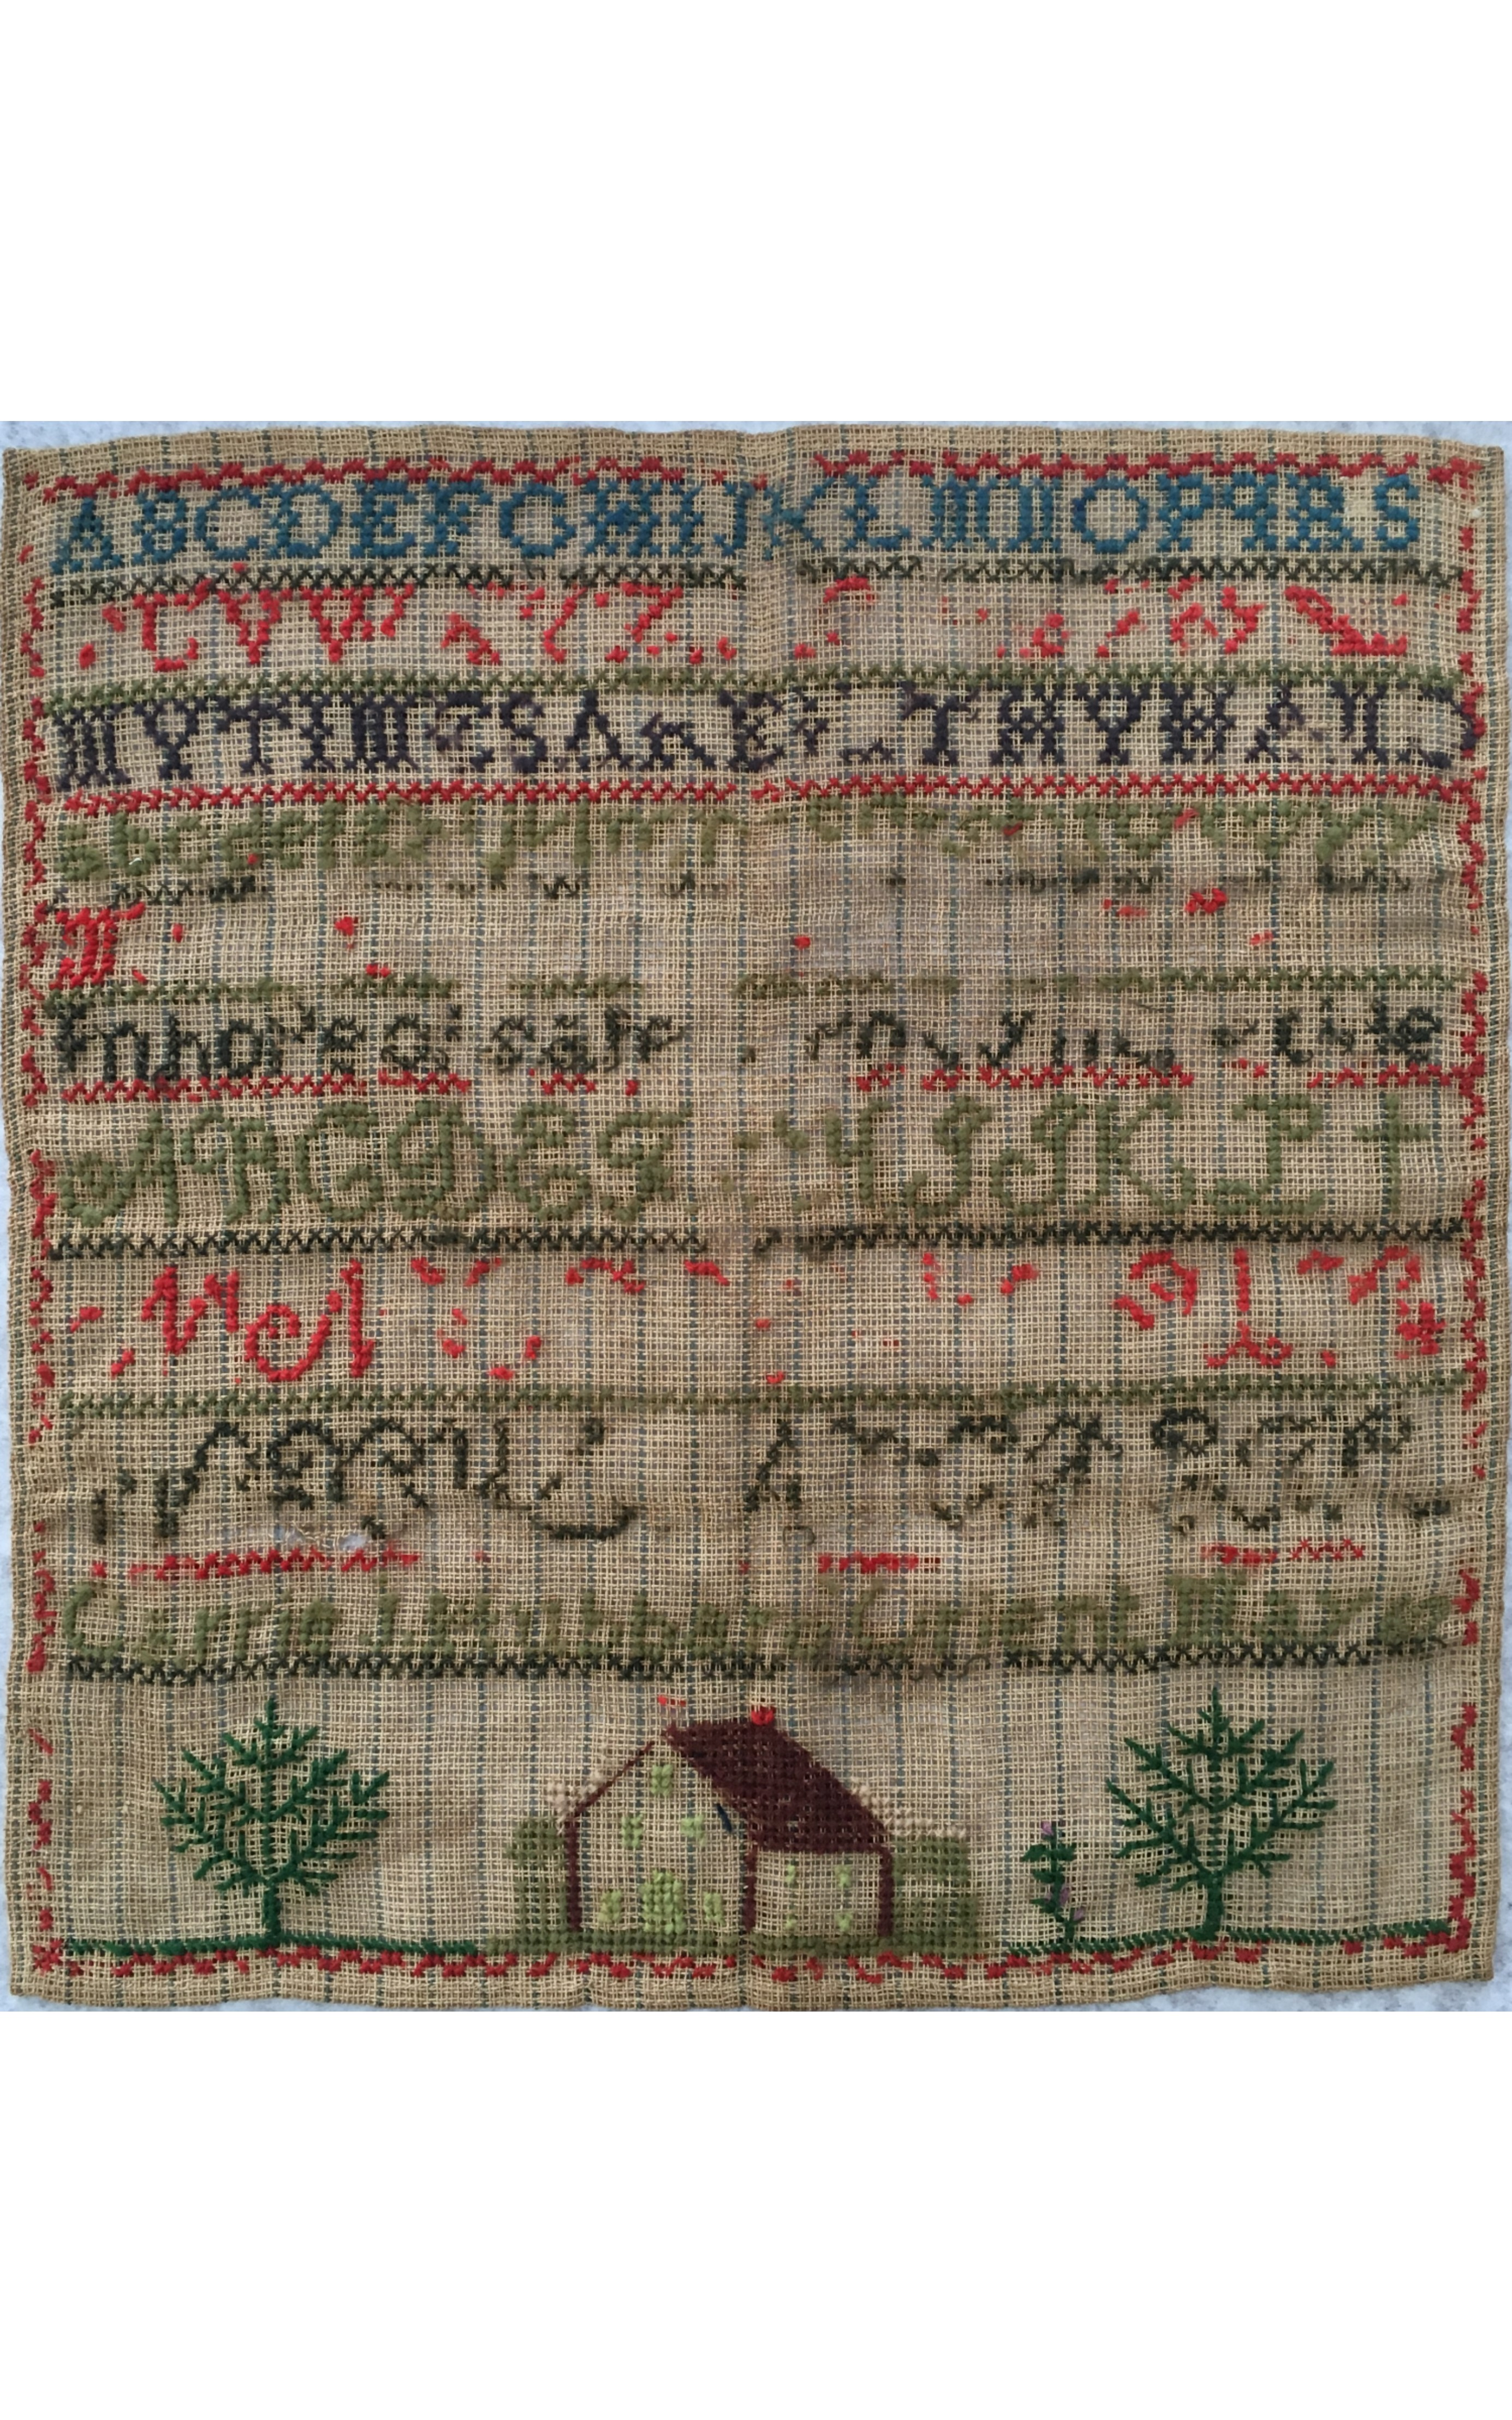 """<h3>Carrie J. Hubbard Sampler</h3> <br> <p><strong>Ca. 1865</strong></p> <p><strong>Gift of William Steeple Davis</strong></p> <br> <p>This sampler was made by the mother of William Steeple Davis (1884-1961), an artist and photographer who lived his entire life in Orient. A very large collection of his photographs, paintings, childhood drawings, etc. form an important part of the holdings of OHS. His mother, Carrie (1853-1950), the daughter of Jane Culver Hubbard and Smith Hubbard, grew up in Orient and made this sampler when she was fourteen years old. On the last line, she has stitched her name followed by """"Orient 67"""". Several sections of the sampler have virtually disappeared, but fortunately her name and charming depiction of trees and a house remain legible. Carrie Hubbard Davis is the subject of the book, <em>Captain's Daughter, Coasterman's Wife</em>, written by Joan Druett and published by OHS in 1995. She is also featured prominently in a book about her mother, <em>In Her Own Name</em>, written by Fredrica Wachsberger and published in 2015 by OHS.</p>"""